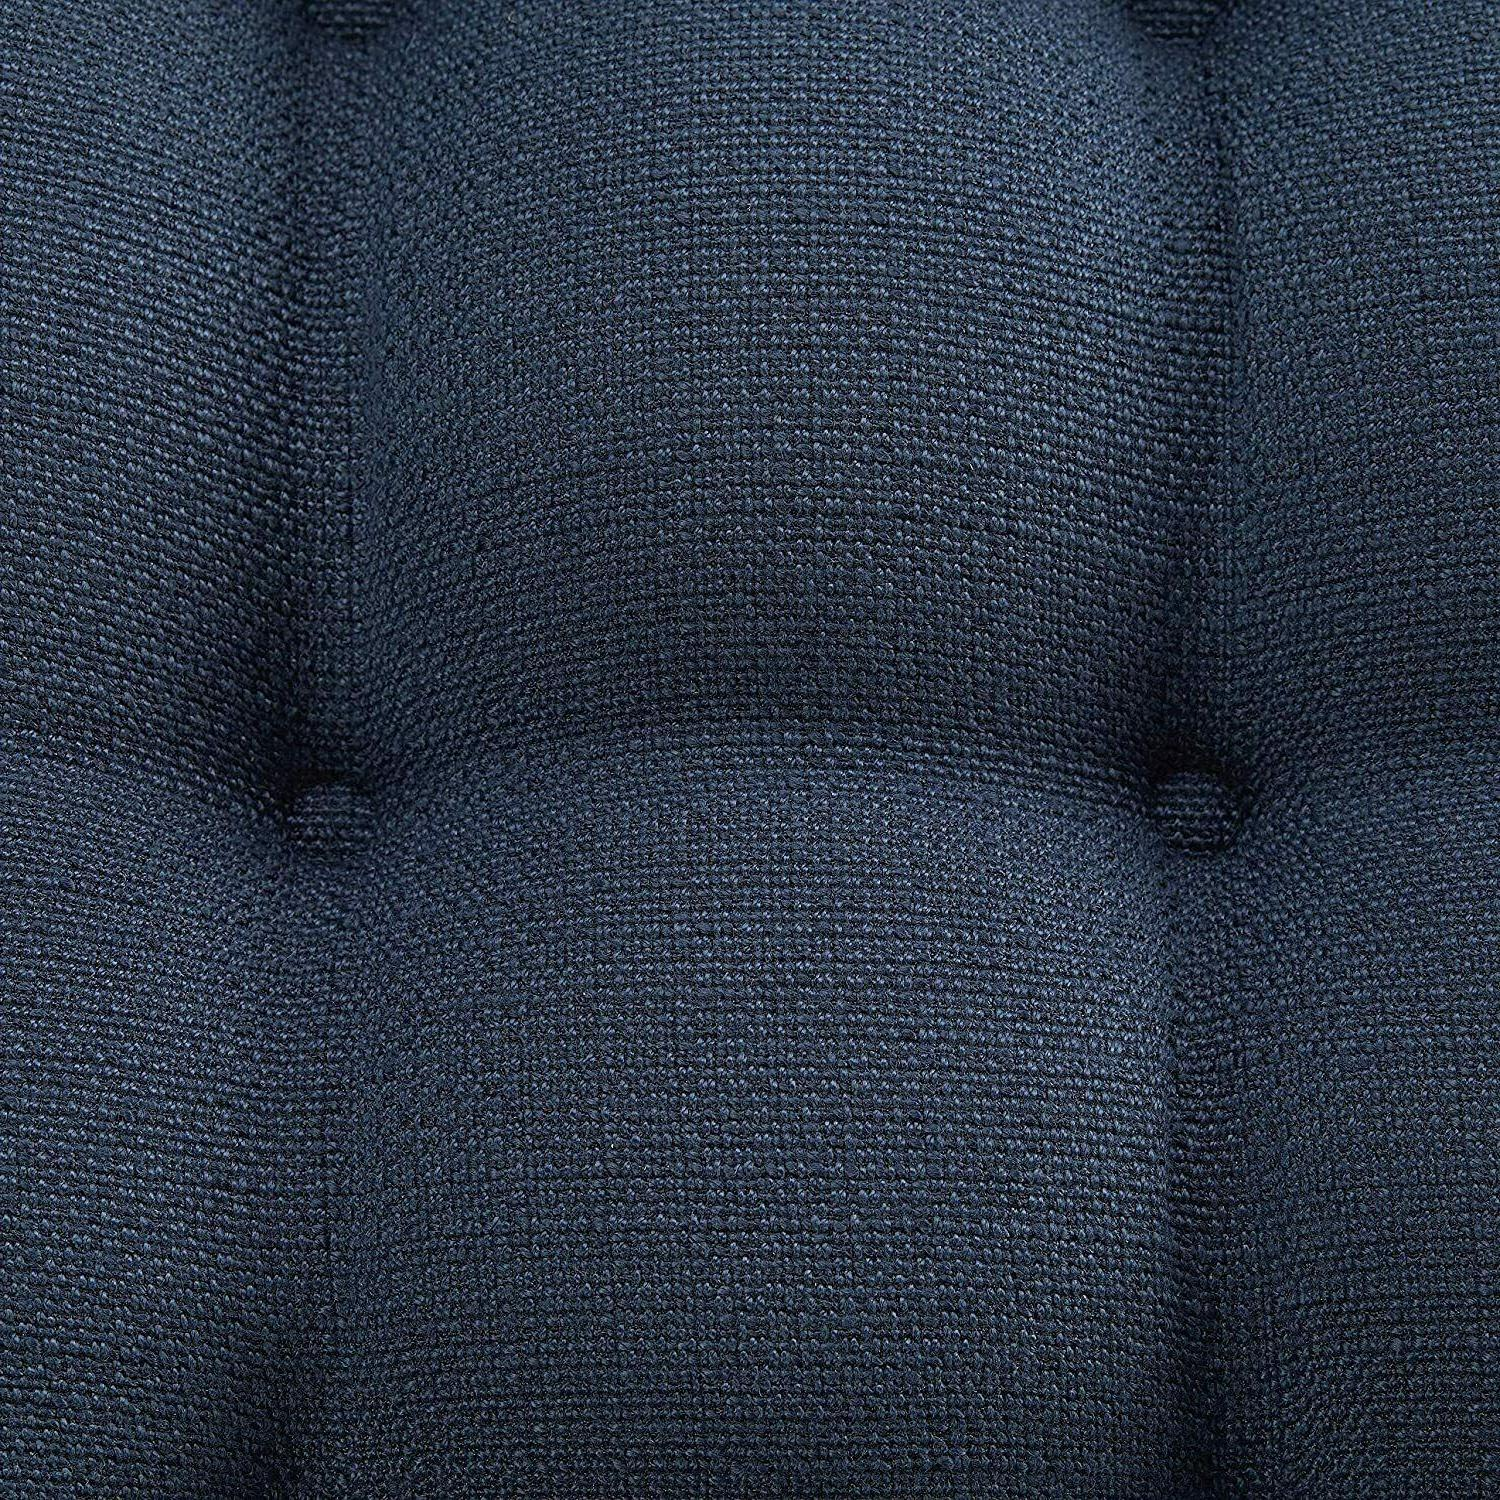 Textured Navy of Cushions For Dining